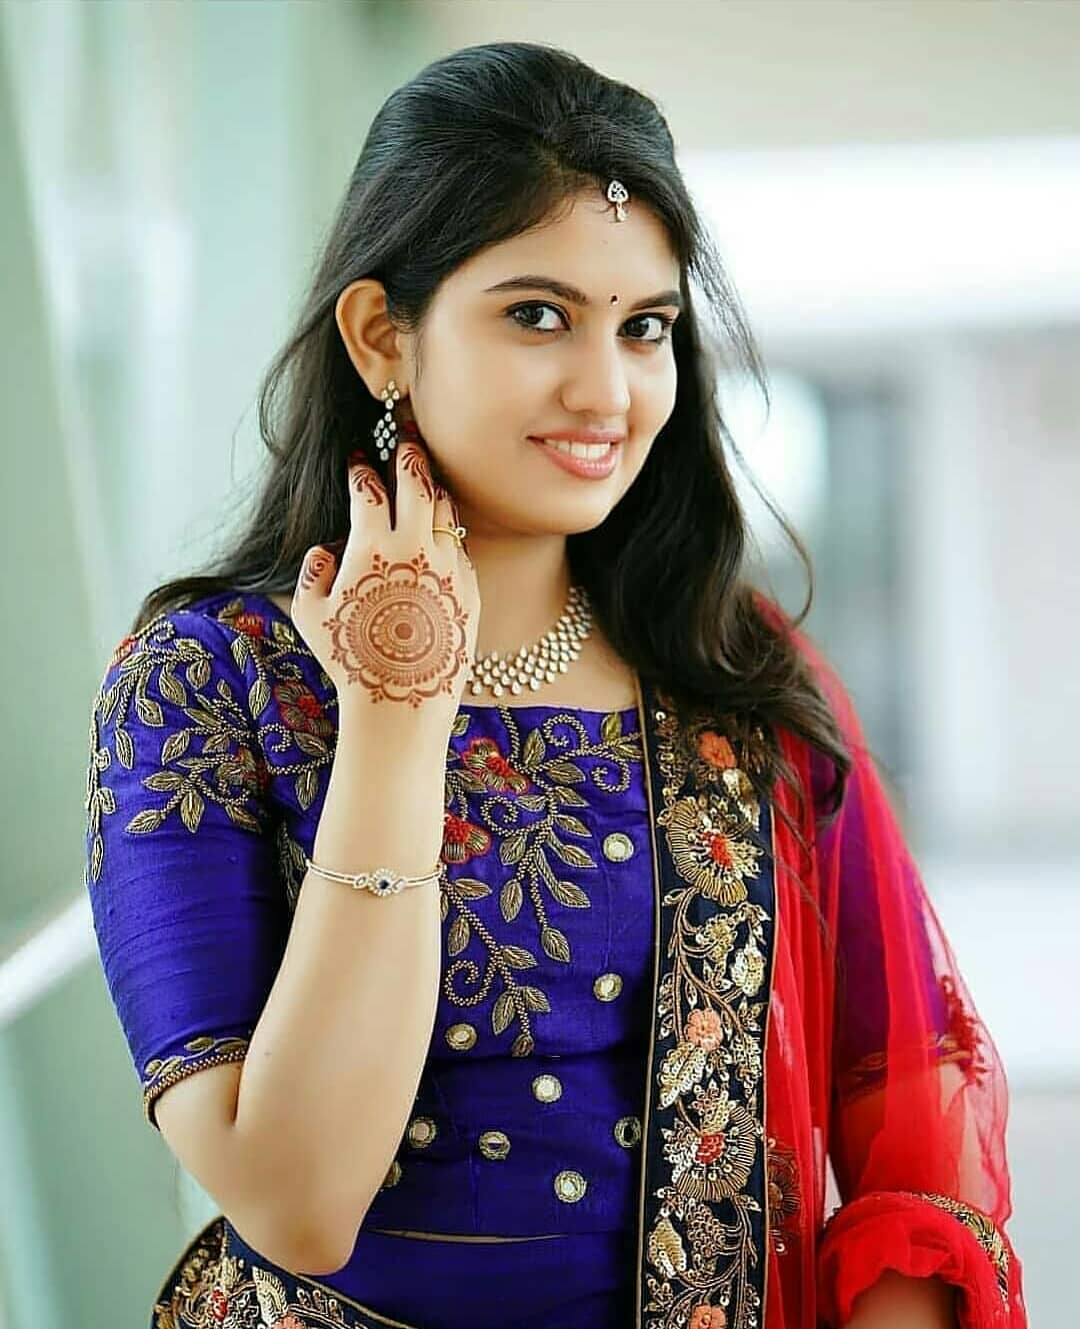 Exclusive Collection of Indian beautiful girls HD photos